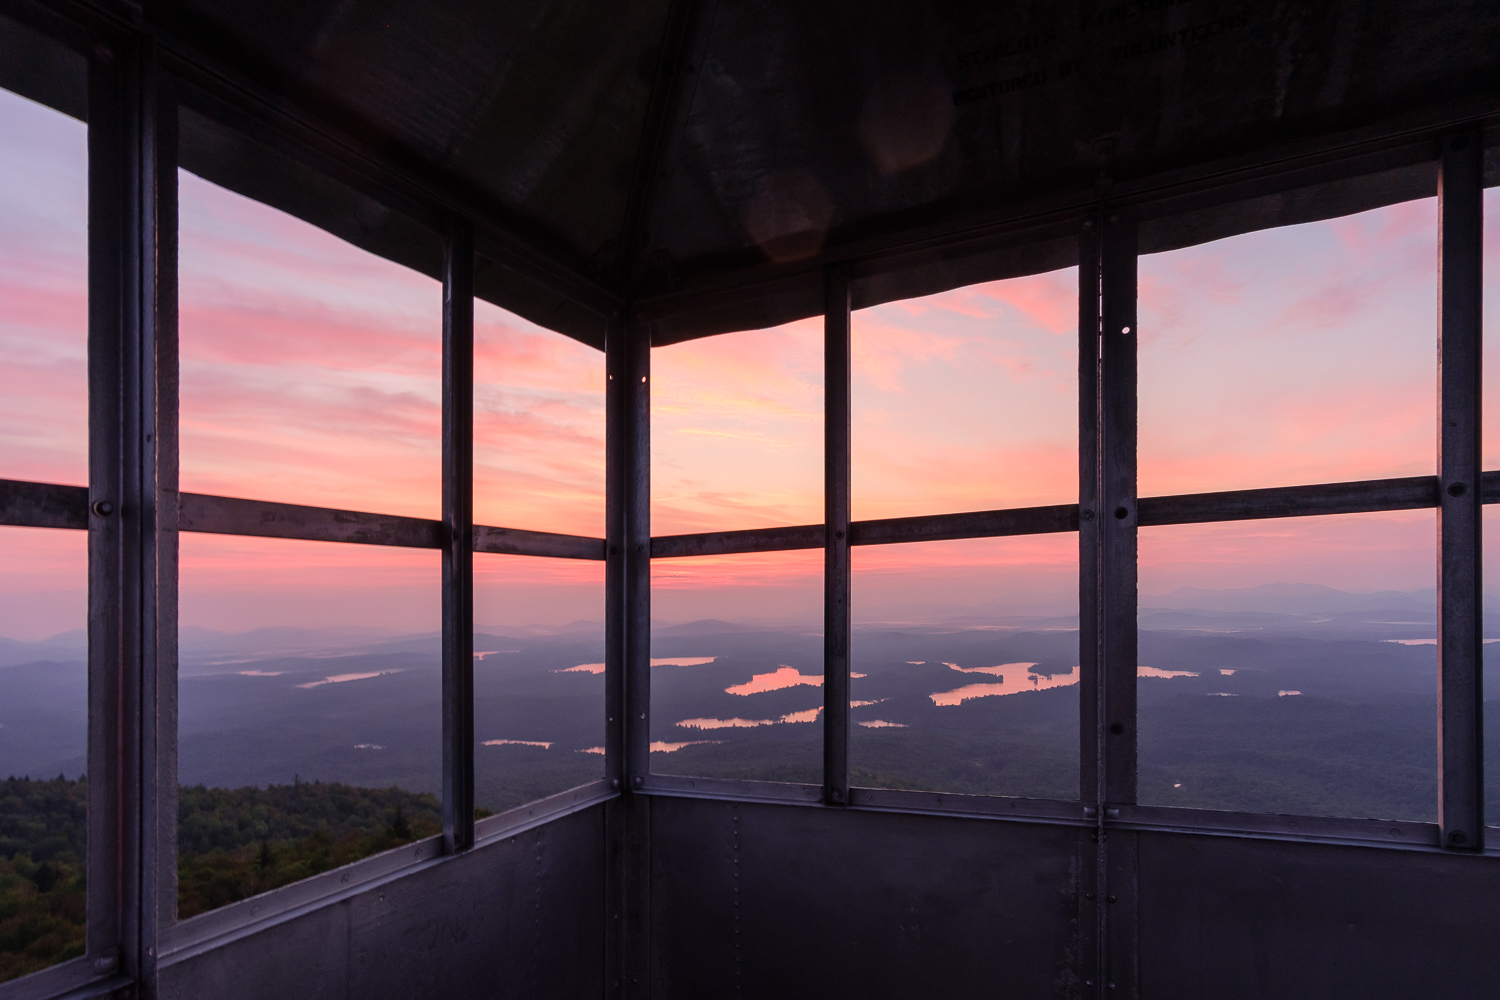 Sunrise on Saint Regis and Spitfire Lakes from the Saint Regis Mountain Lookout, Adirondack Park, NY.